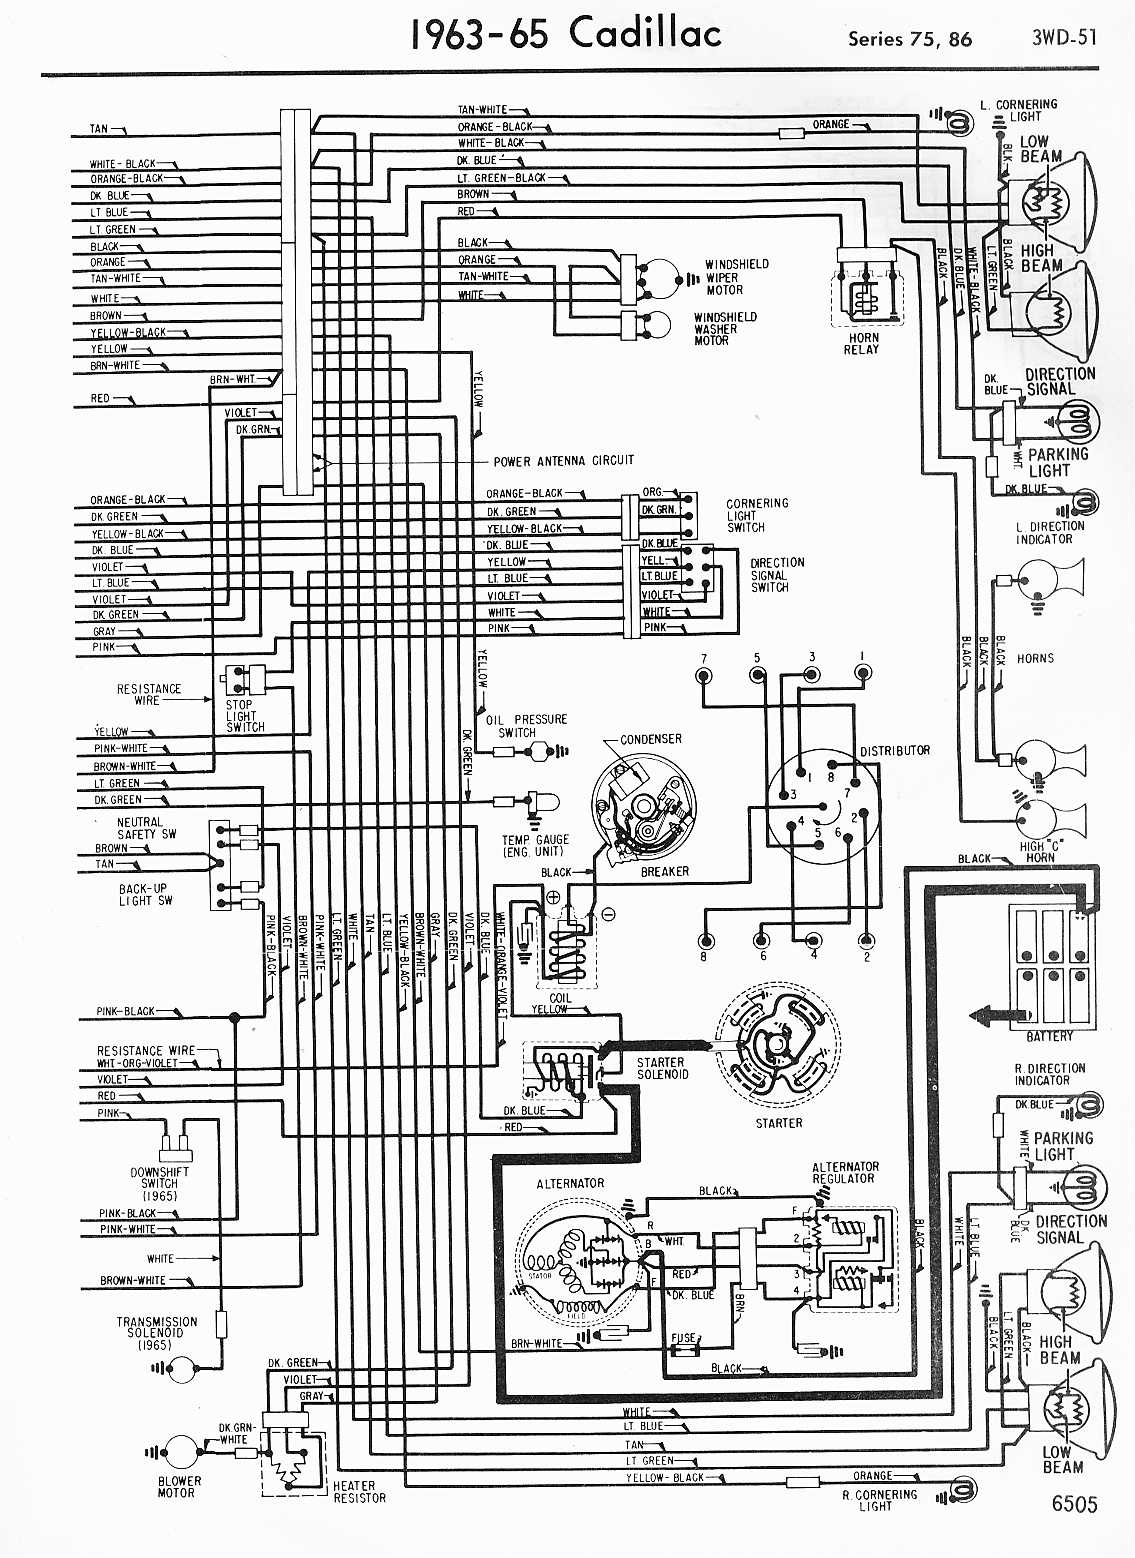 1967 Cadillac Eldorado Wiring Diagram Guide And Troubleshooting Of Catera Fuse Box Layout 67 Third Level Rh 4 9 11 Jacobwinterstein Com